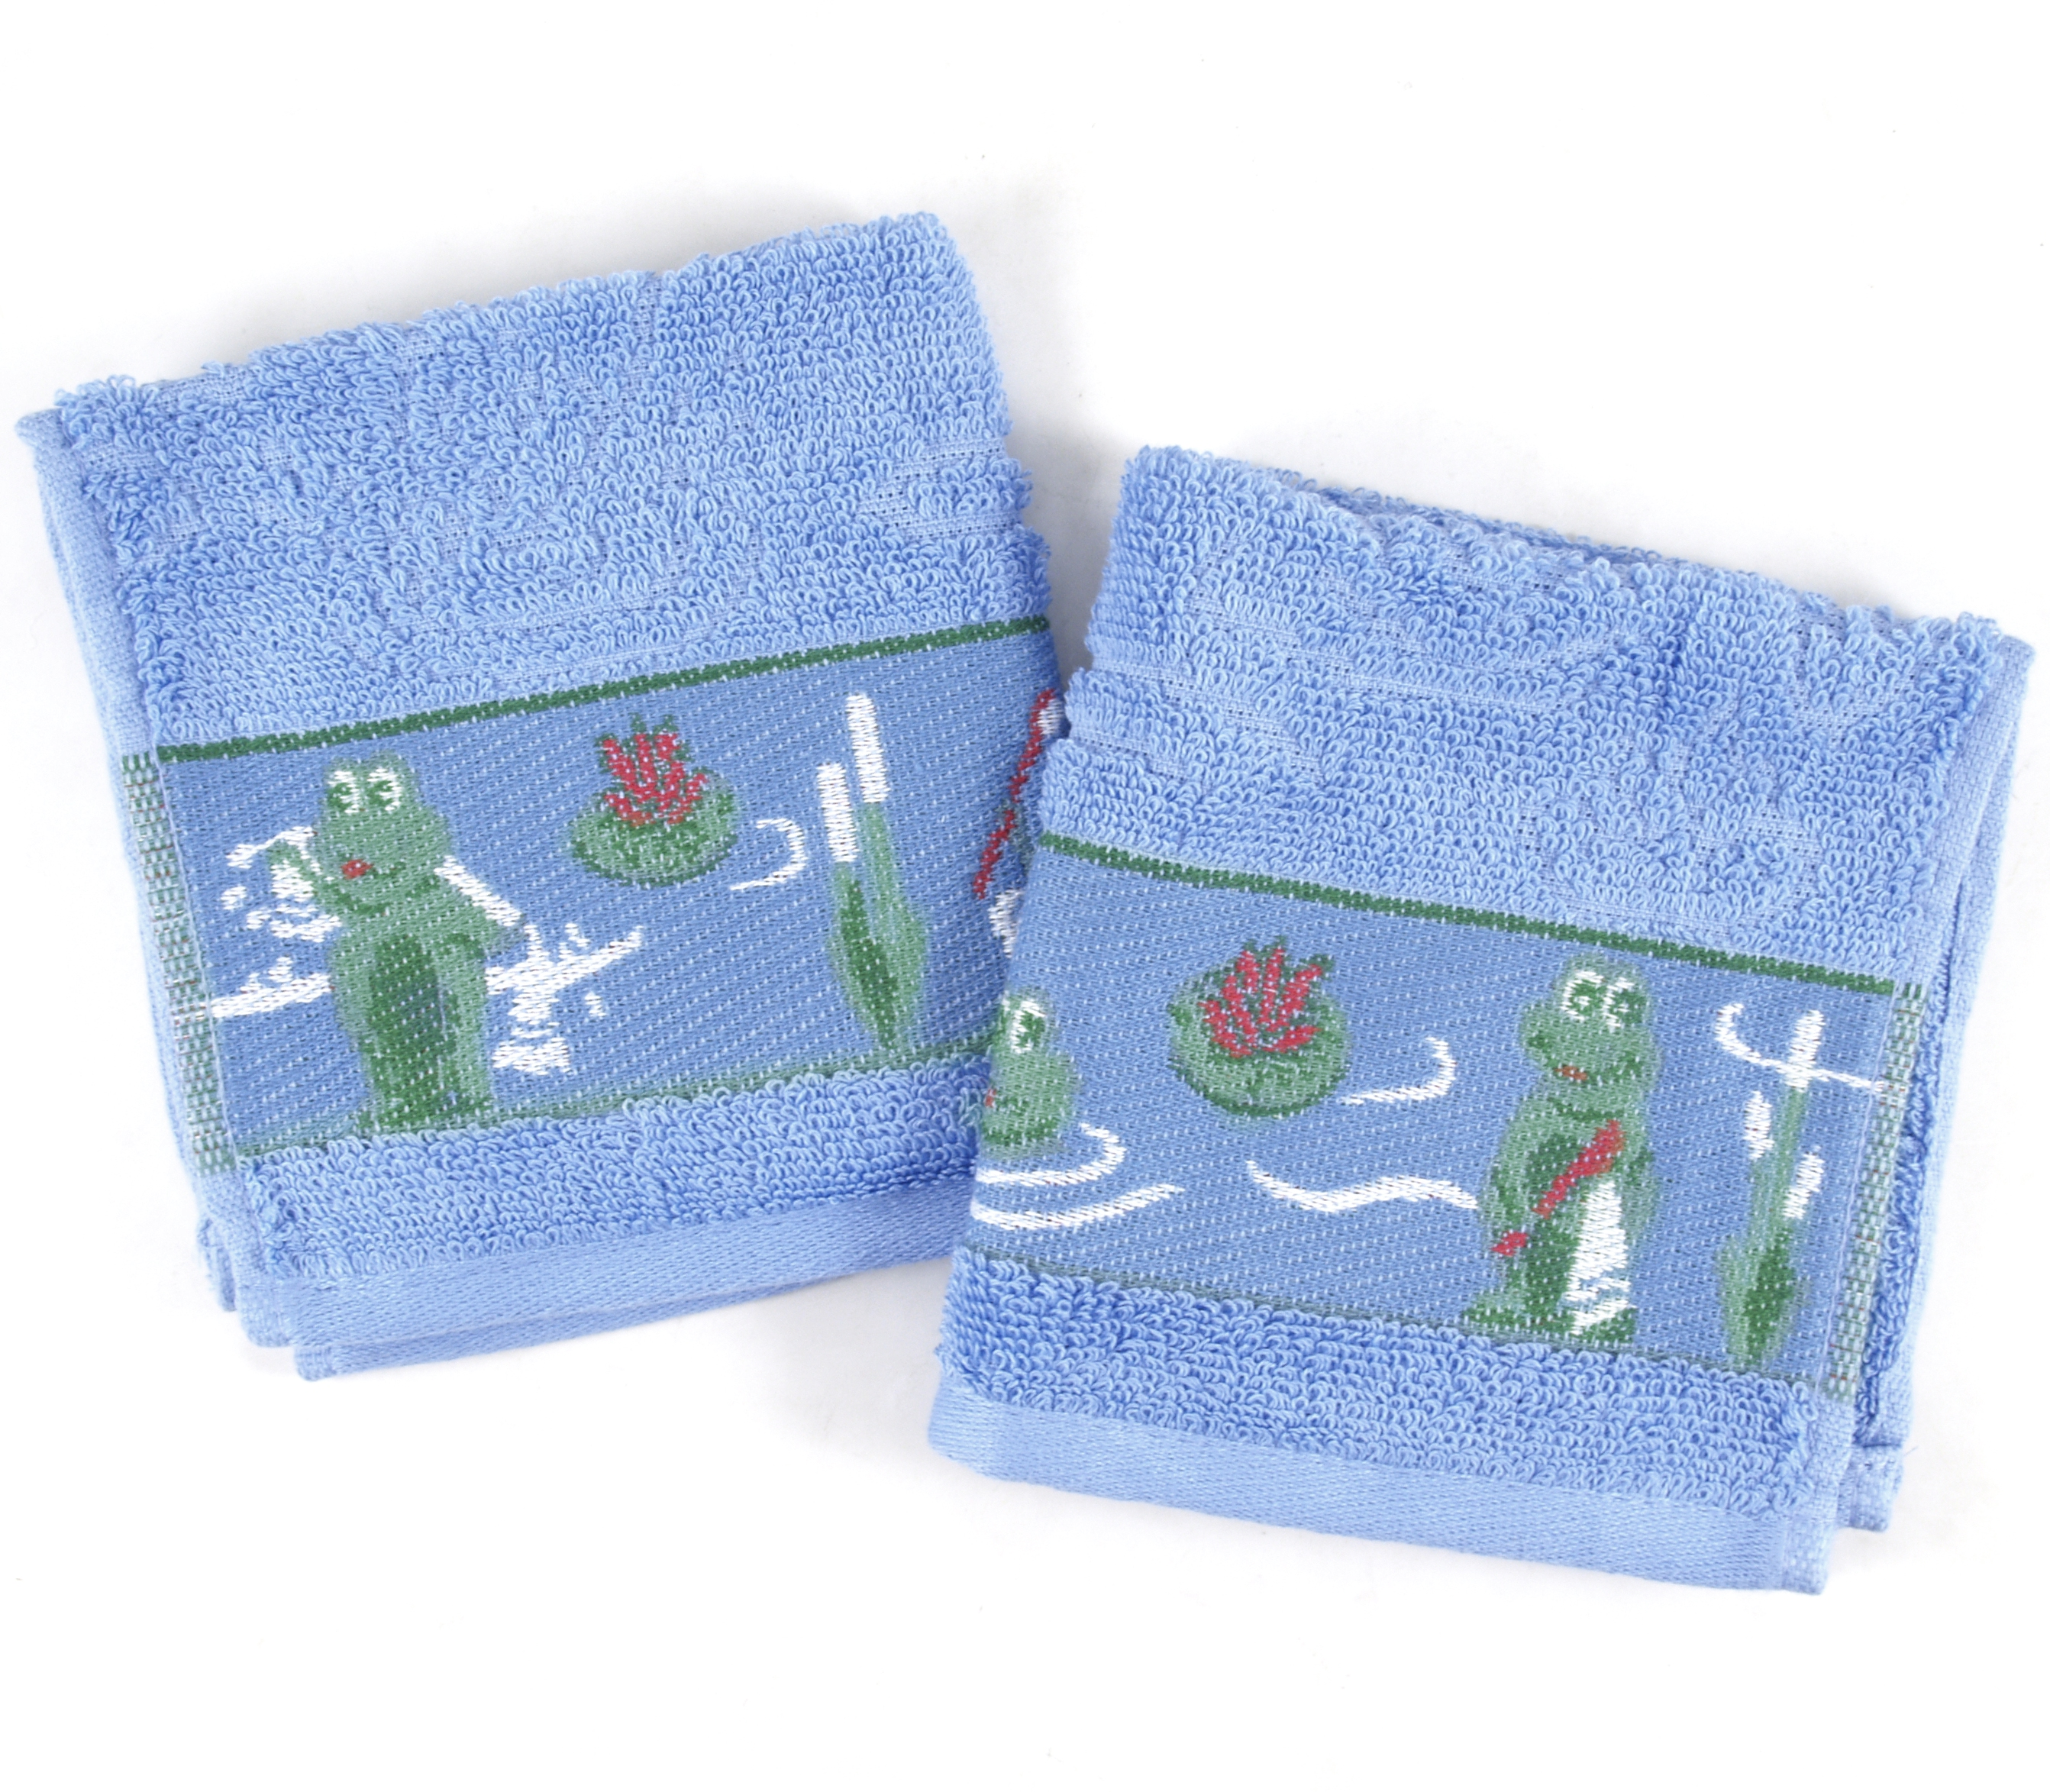 Froggy Blue Cotton Washcloths 12x12, Set of 2